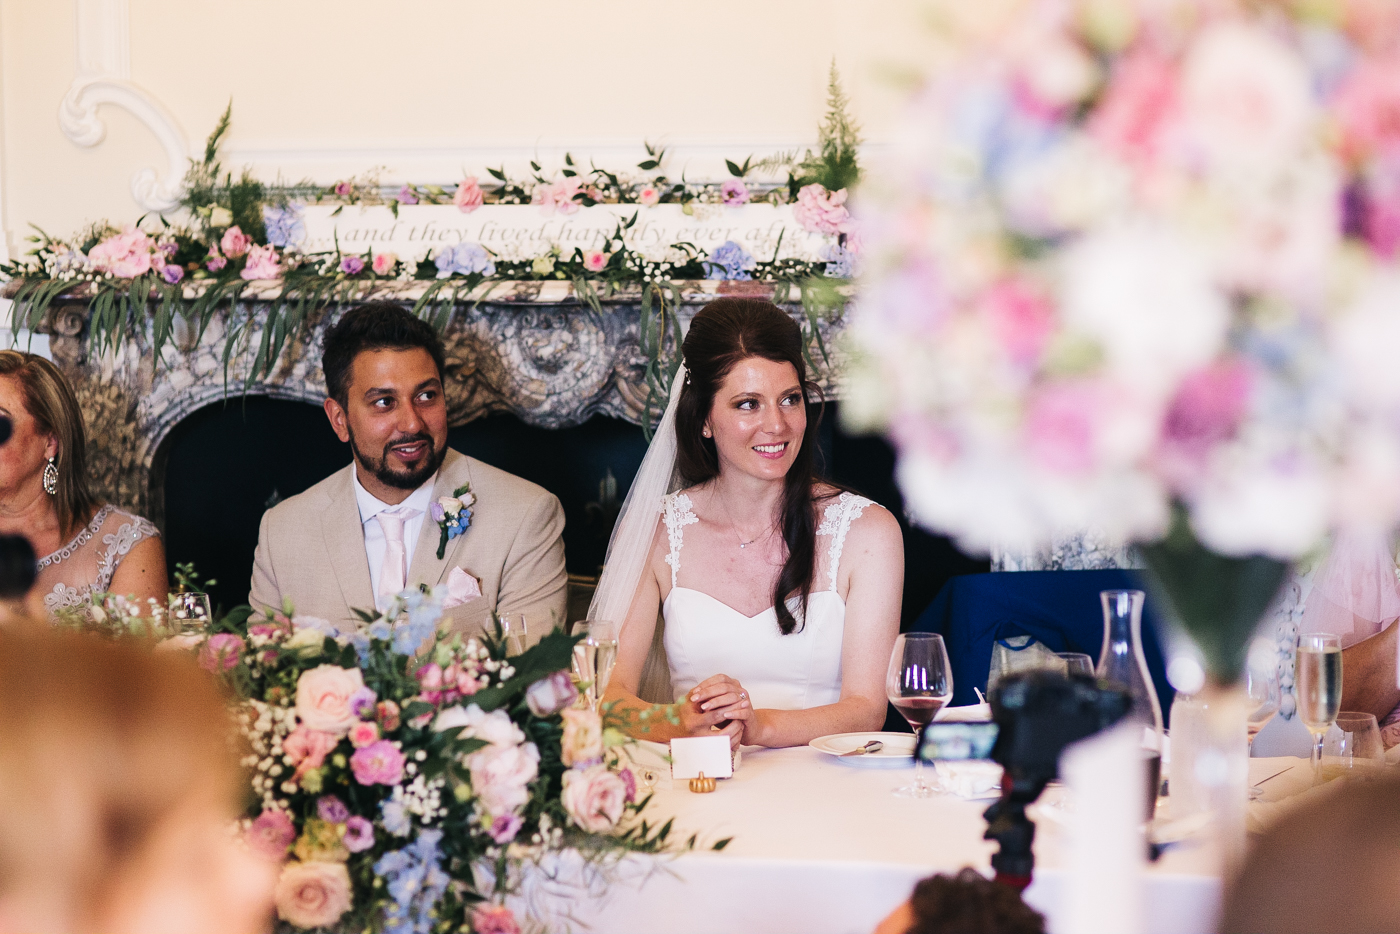 wedding-at-rudby-hall-north-yorkshire-teesside-photographer-0057.jpg